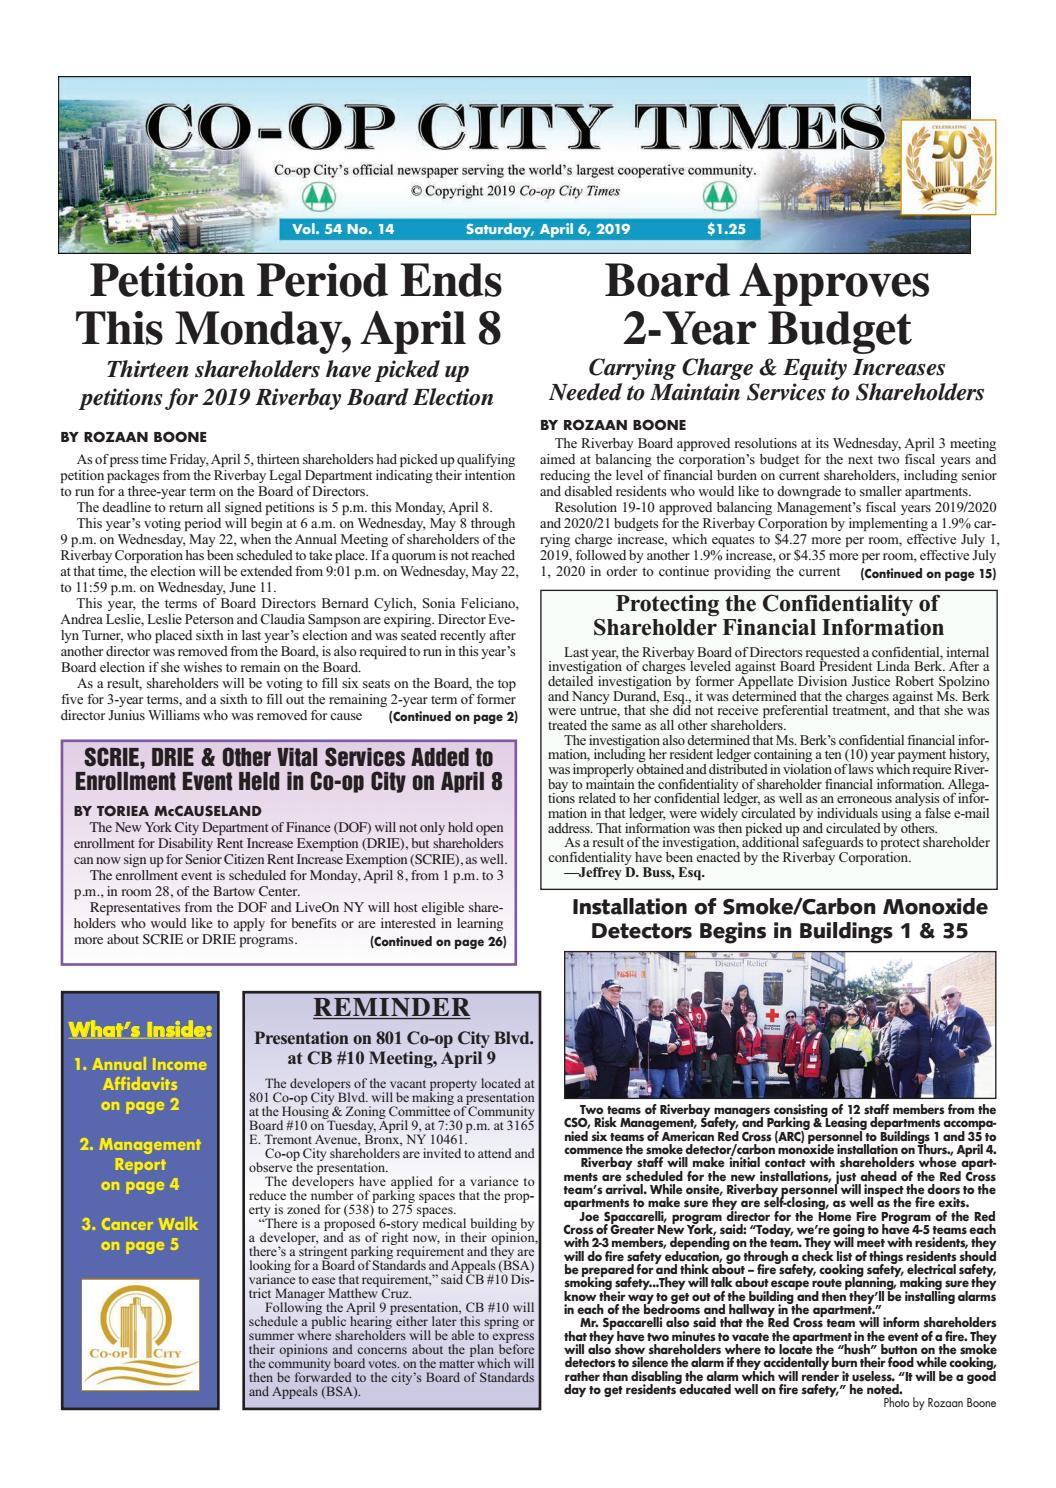 Co-op City Times 4/6/19 by Co-op City Times - issuu